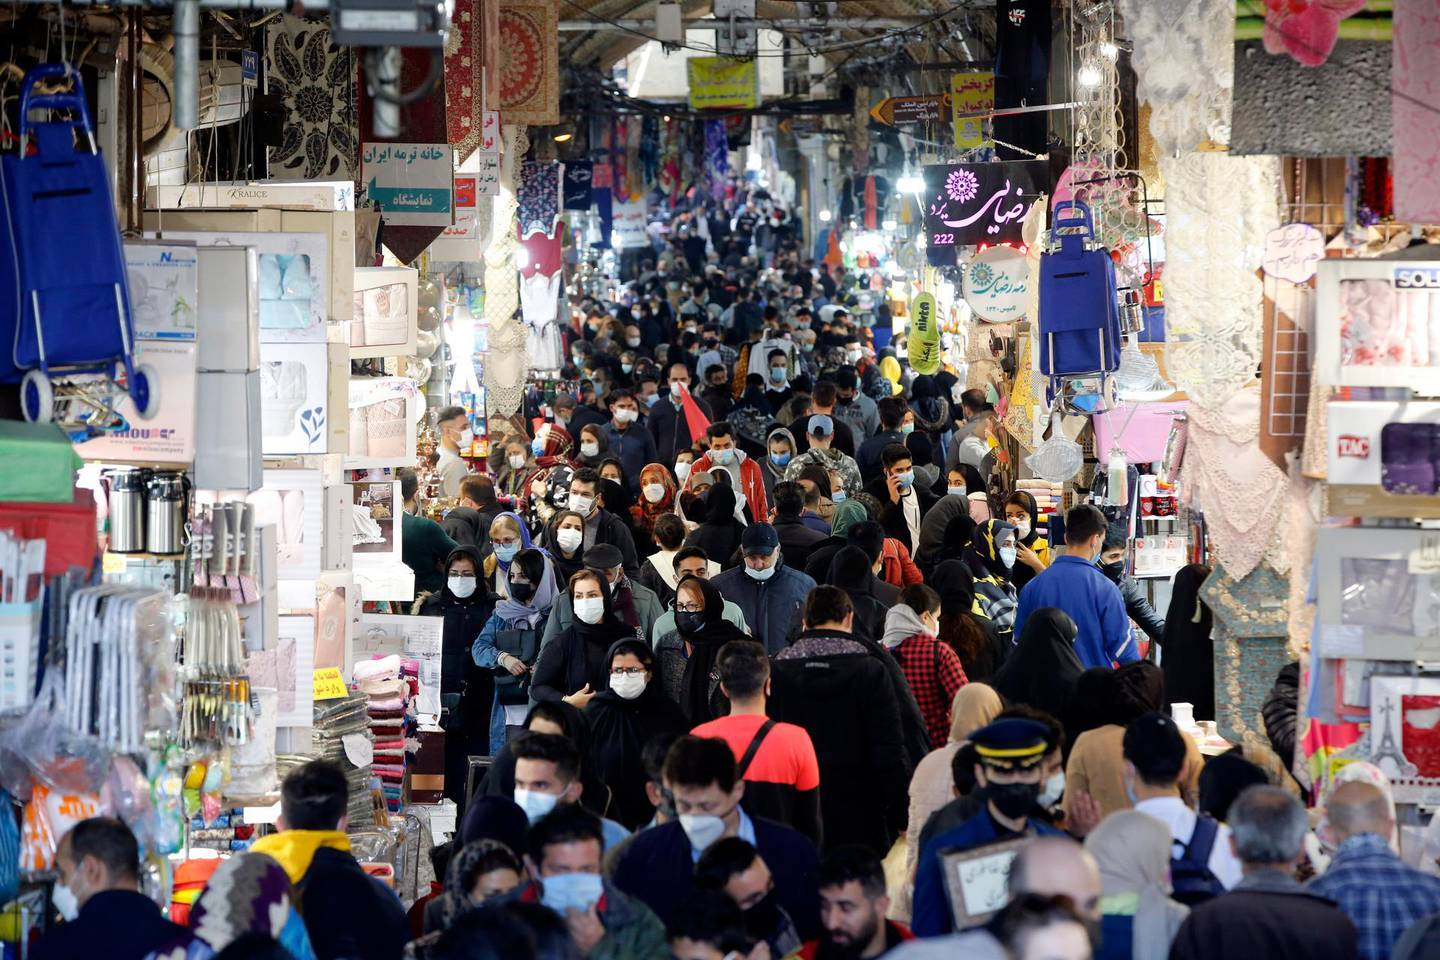 epa09045996 Iranians wearing face masks go shopping in old grand bazaar in Tehran, Iran, 02 March 2021. According to Iranian foreign ministry Iran has rejected an offer by the European Union to engage in direct talks with the United States over the 2015 nuclear deal, saying that US should lift sanctions before any kind of talks. Iran is struggling with hard economic crisis over though sanctions by US administrations as the tensions between Iran and US is going on over Iran's dispute nuclear program.  EPA/ABEDIN TAHERKENAREH